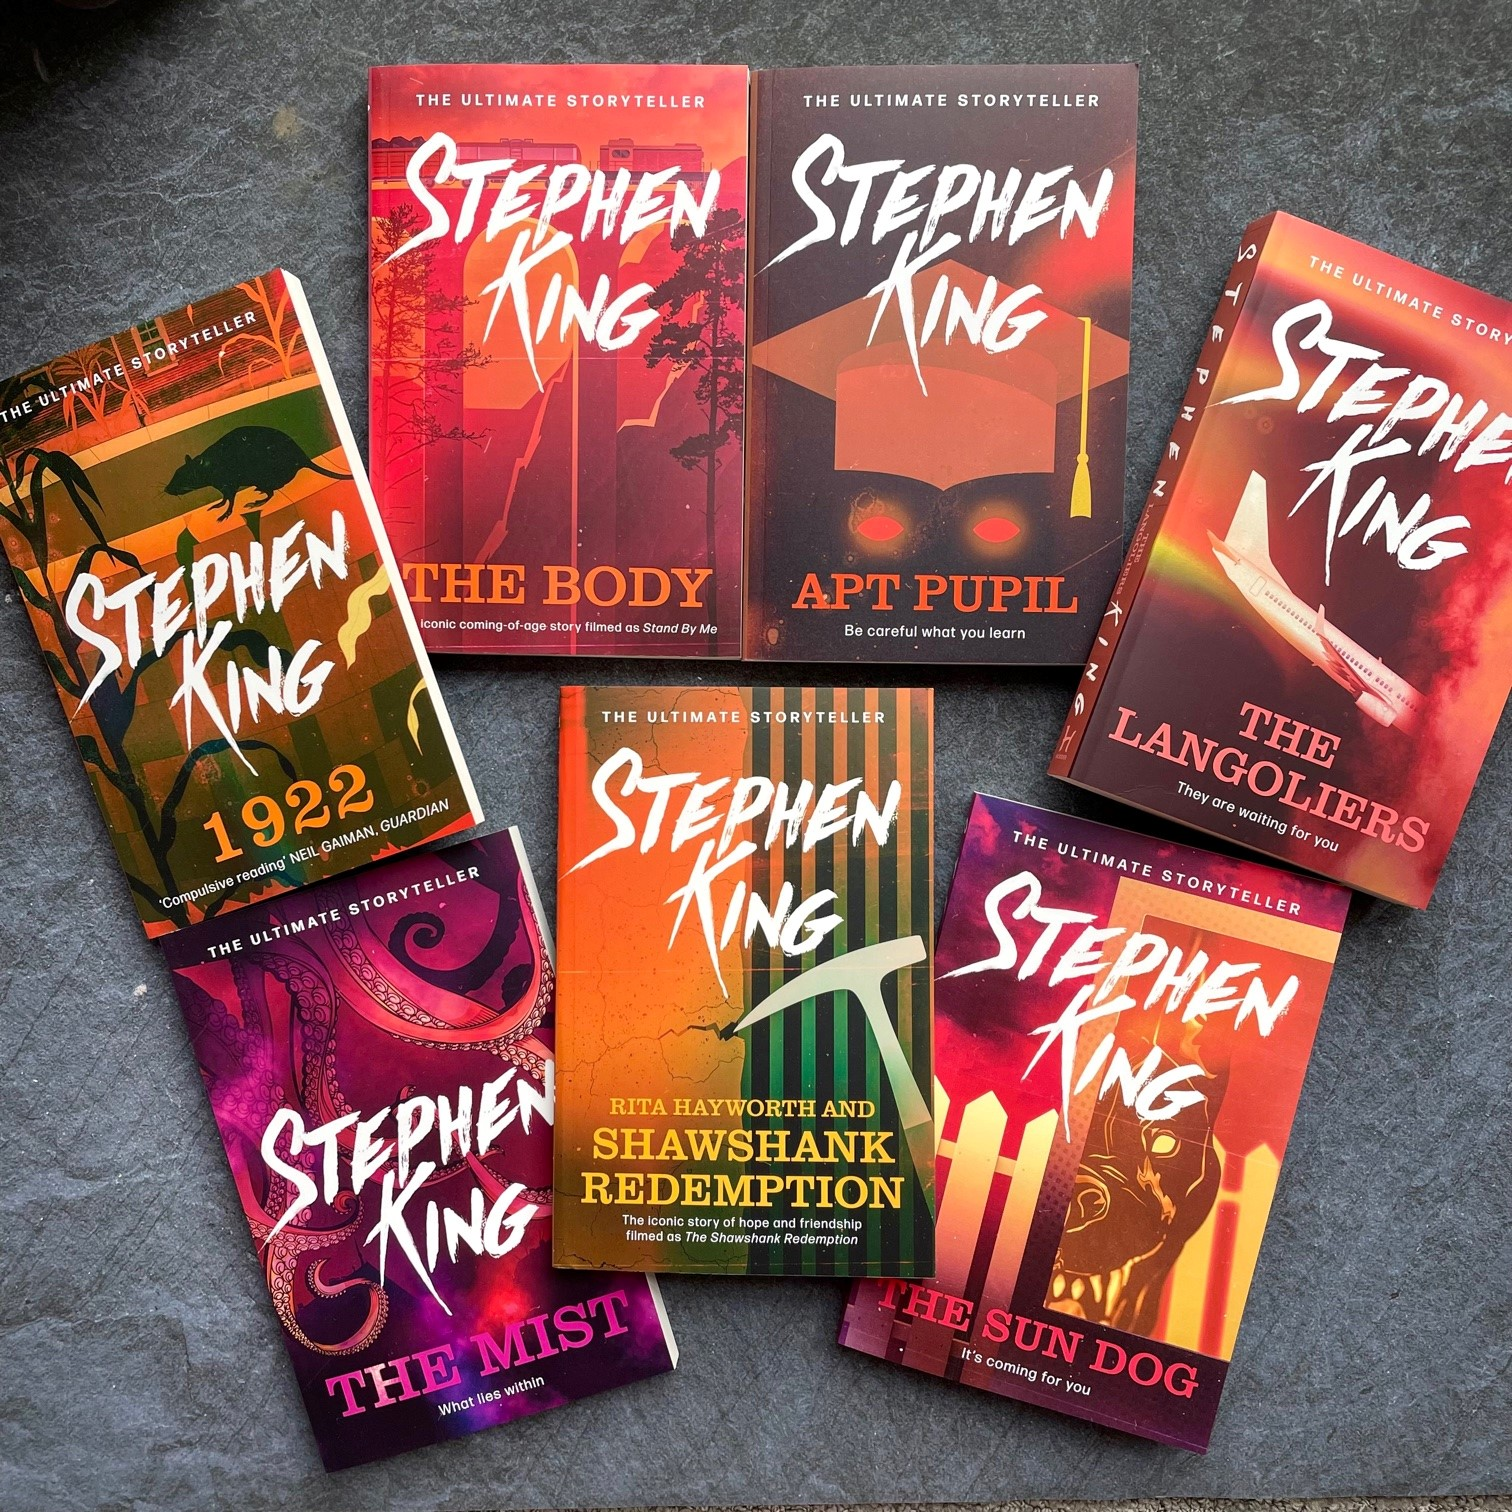 King for a Day: An introduction to Stephen King's novellas